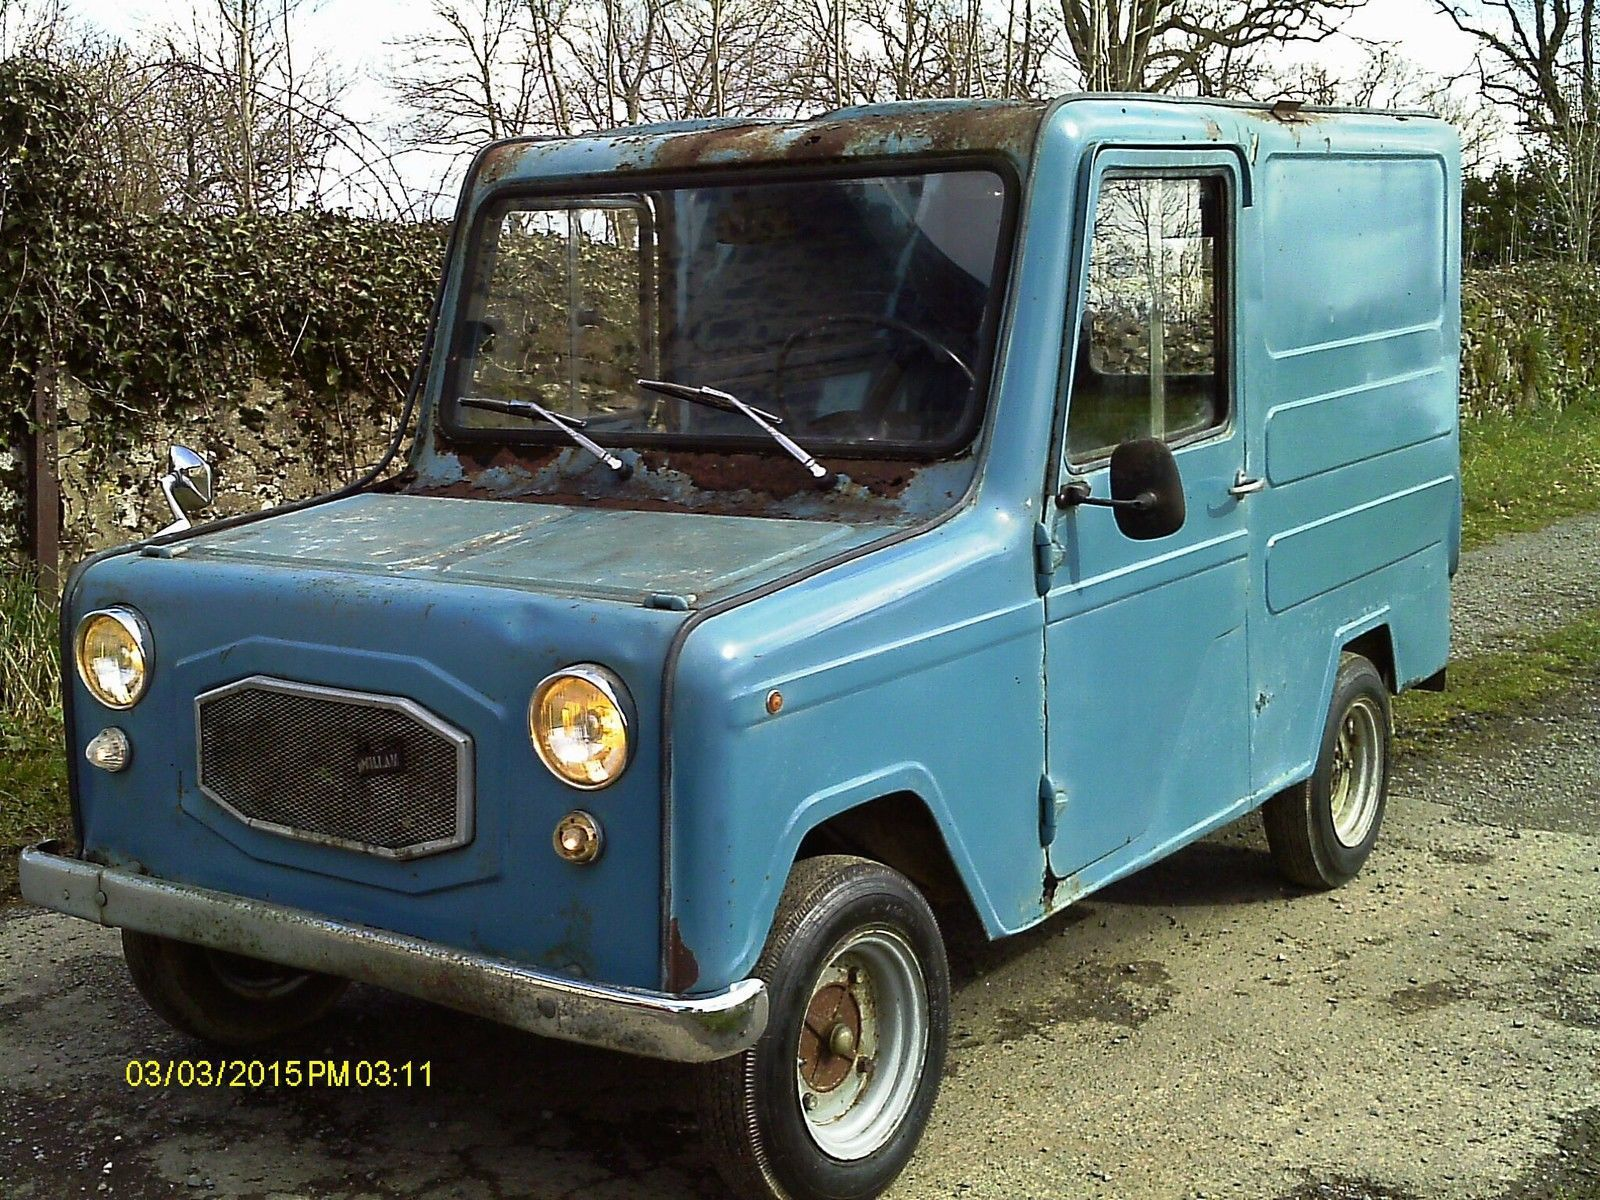 125cc 1980 Lambretta William Voiturette Postman Pat Van